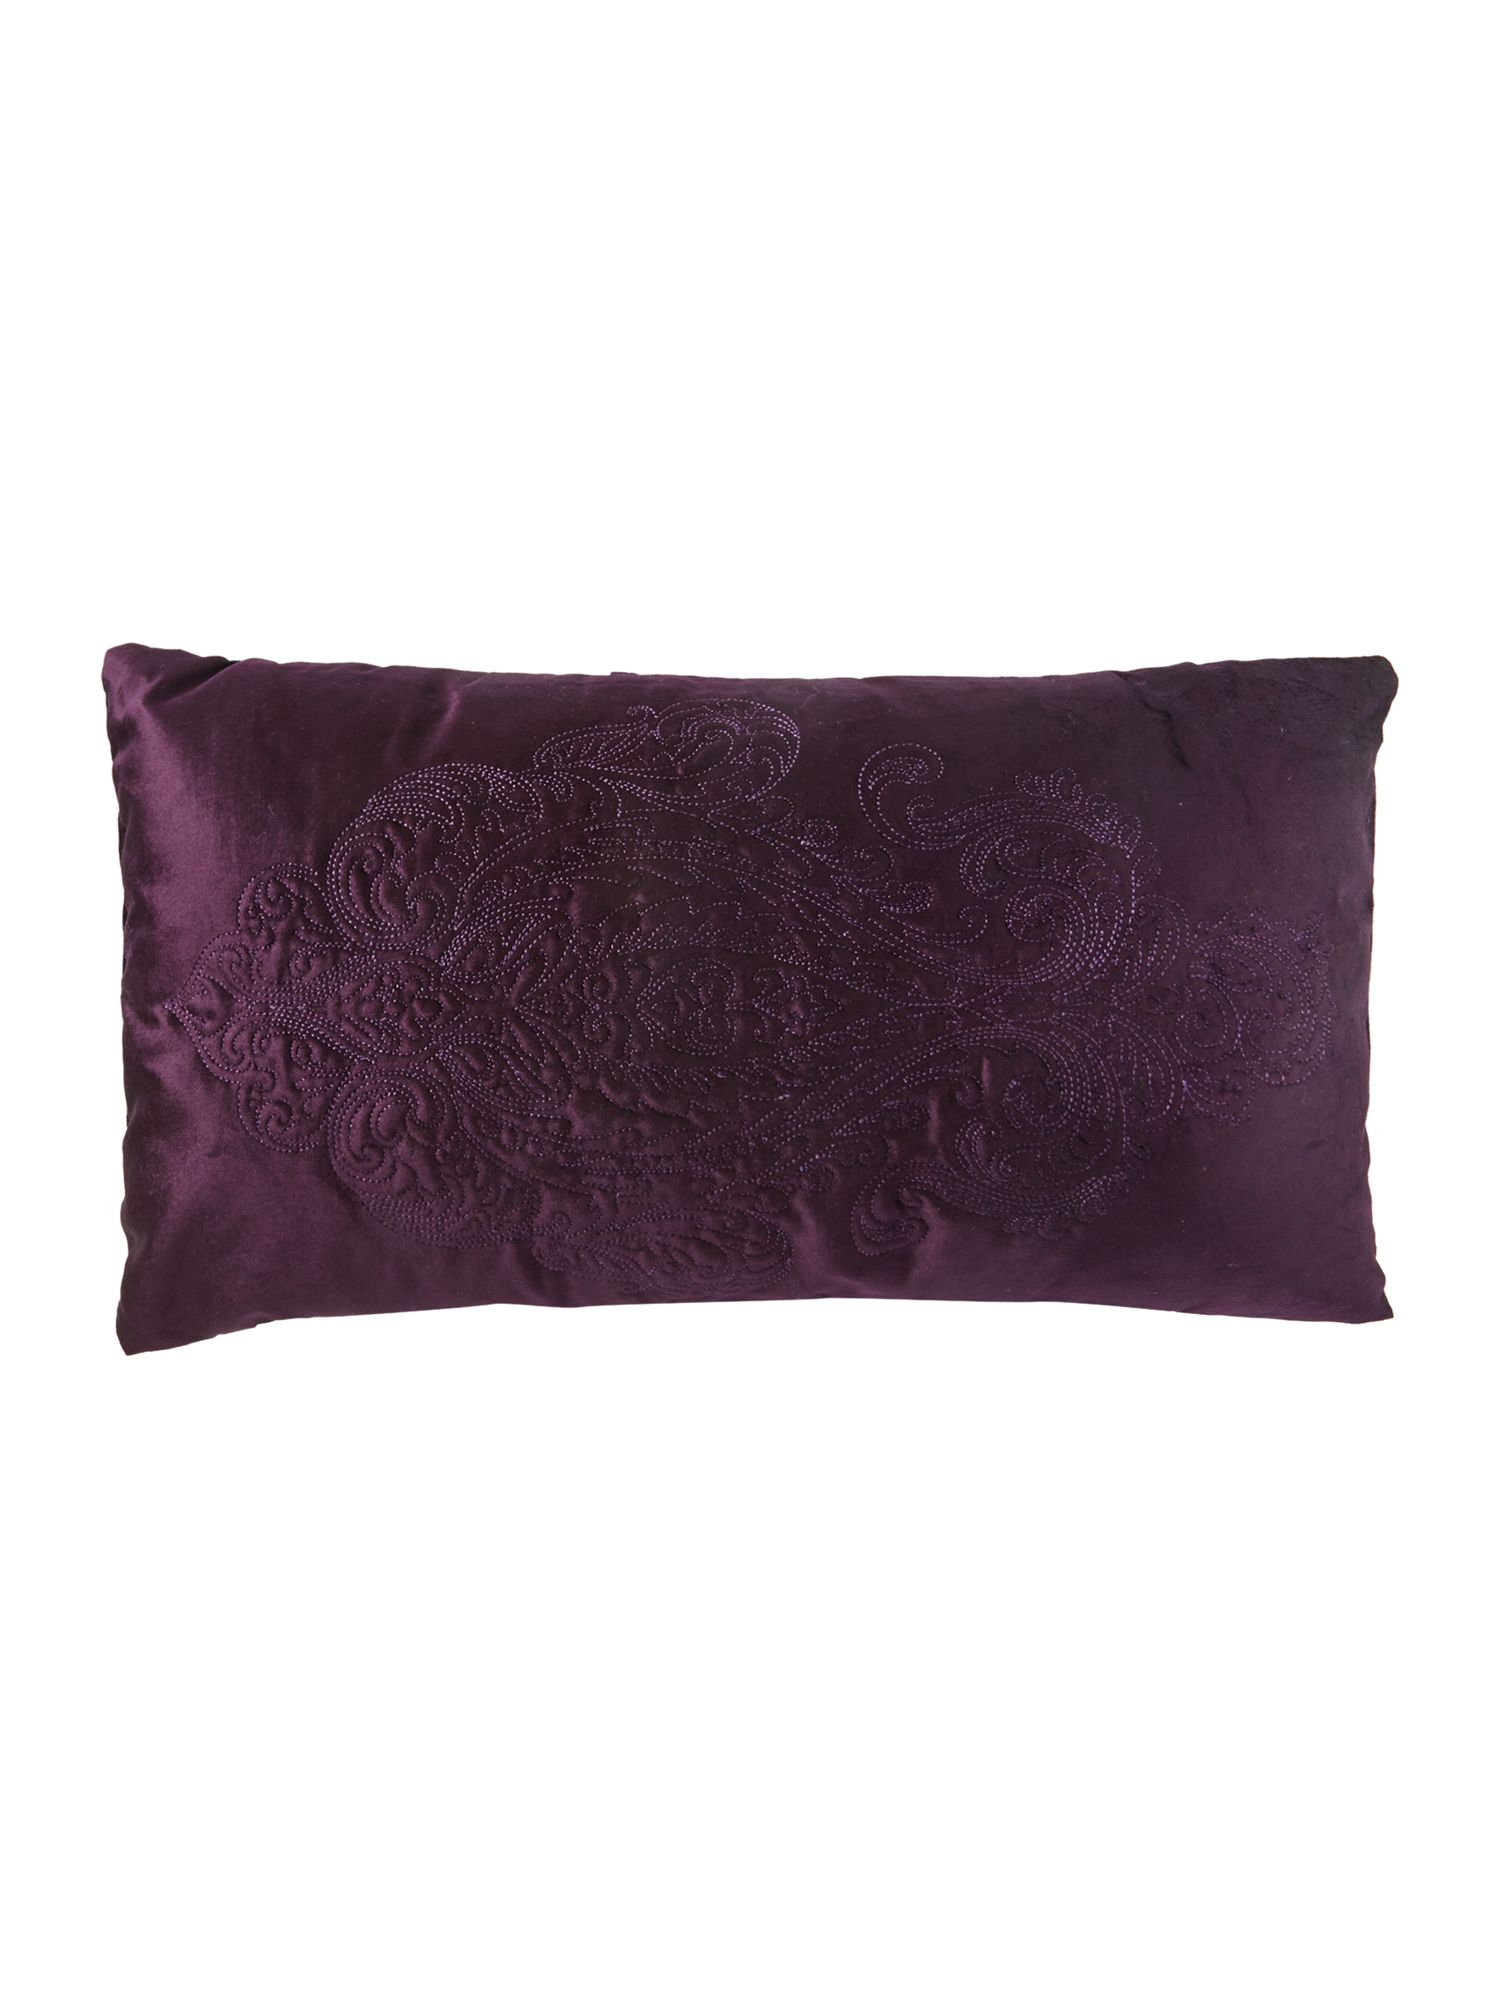 Zelda cushion in orchid purple